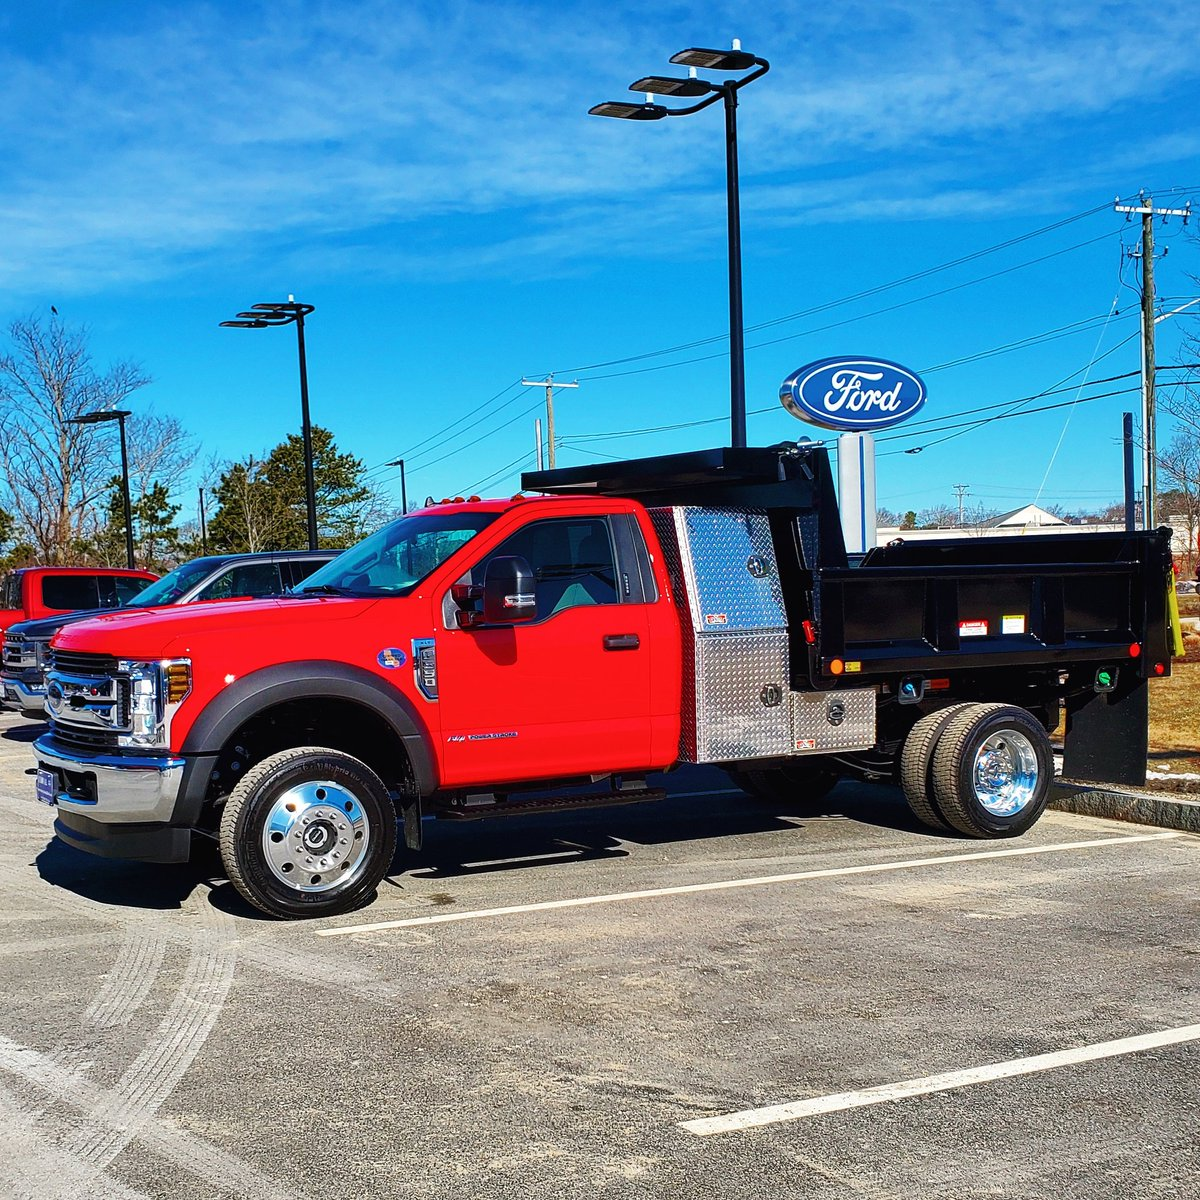 Worktruck Wednesday!2020 Ford F550 6.7L Diesel Dump Truck!Contact Winston at wbennett@buycolonialford.com today! #Diesel #work #worktruckwednesday #worktruck #wednesdaythought  #BlackLivesMatter